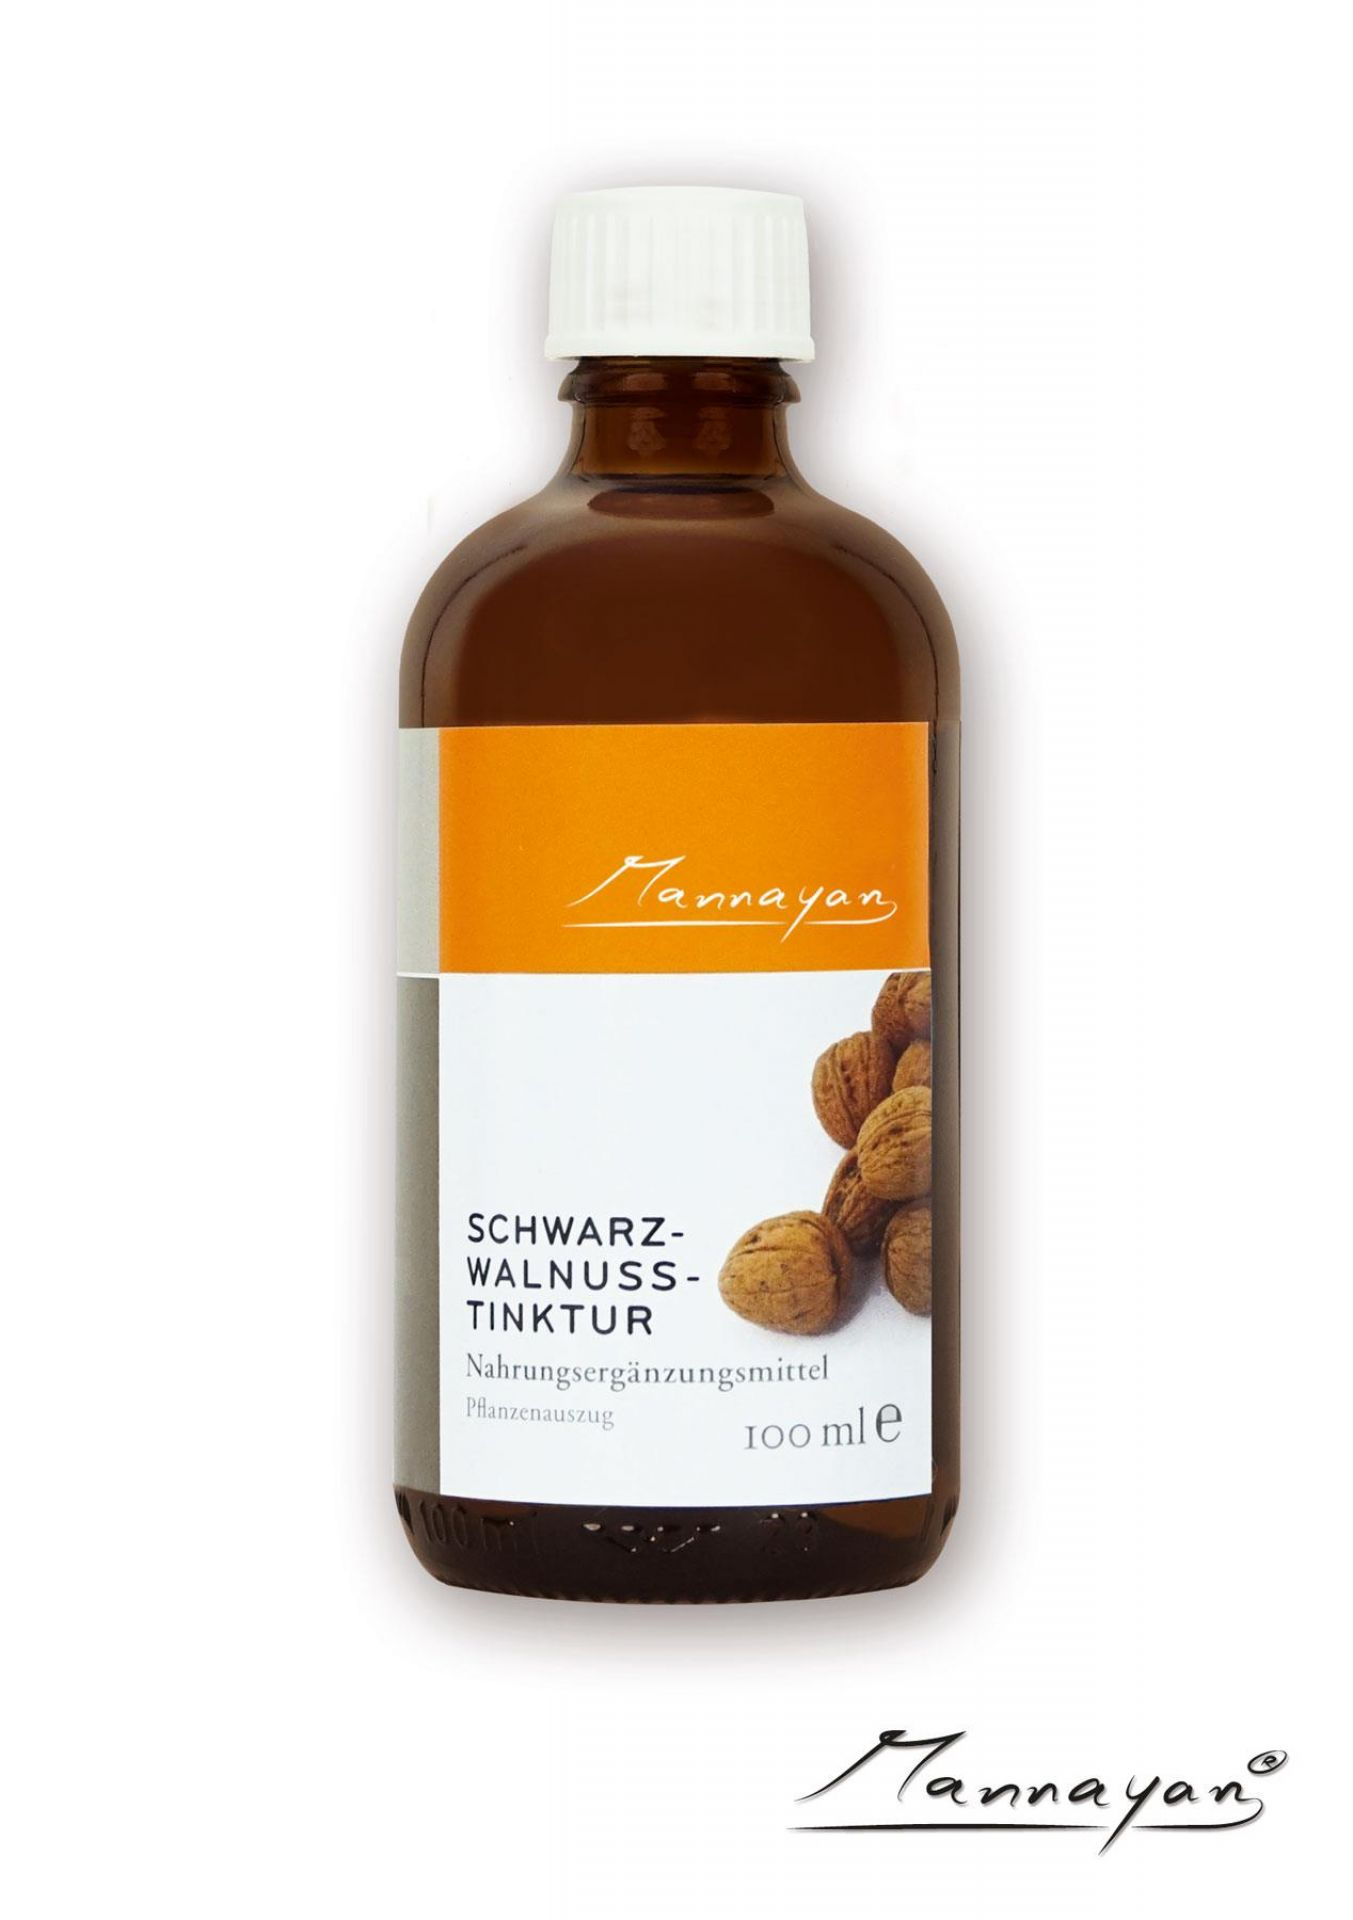 Mannayan Schwarzwalnuss (tincture) (black walnut) 100 ml